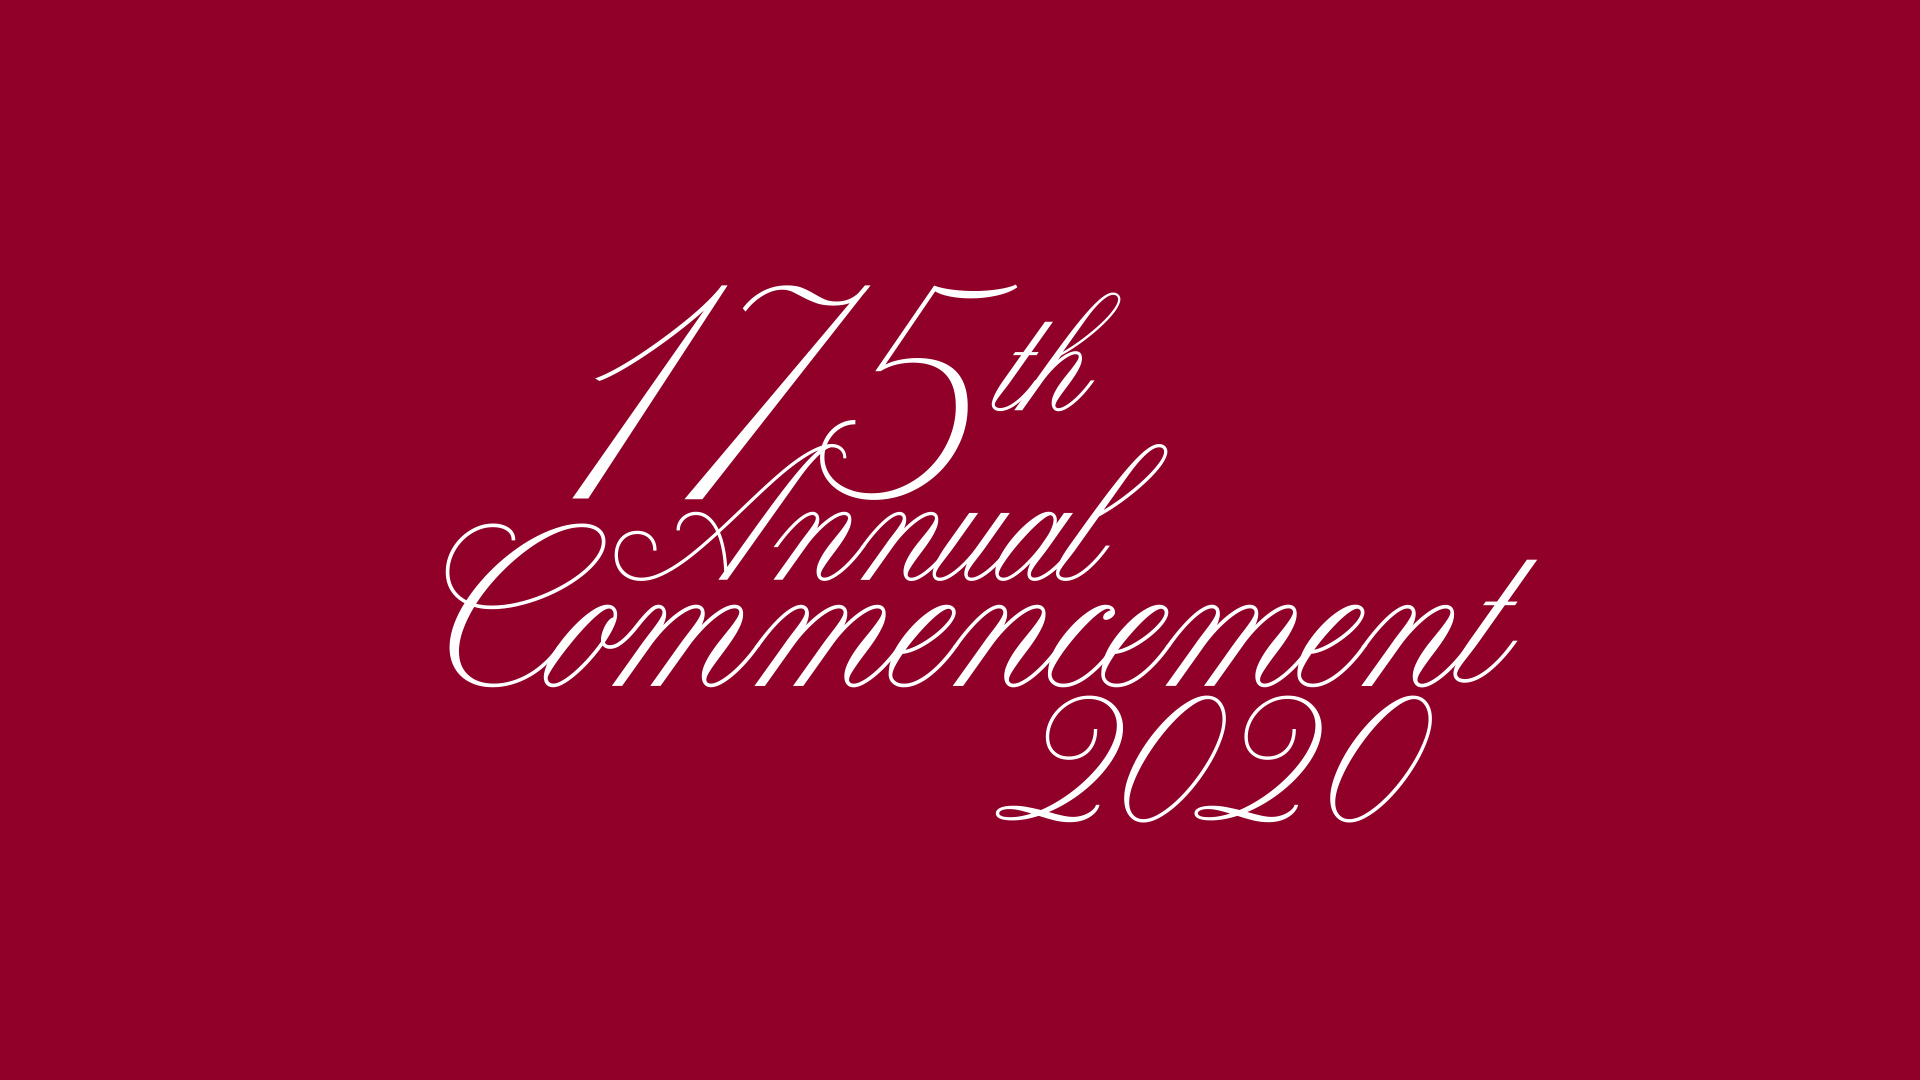 175th Commencement Horizontal Zoom Background